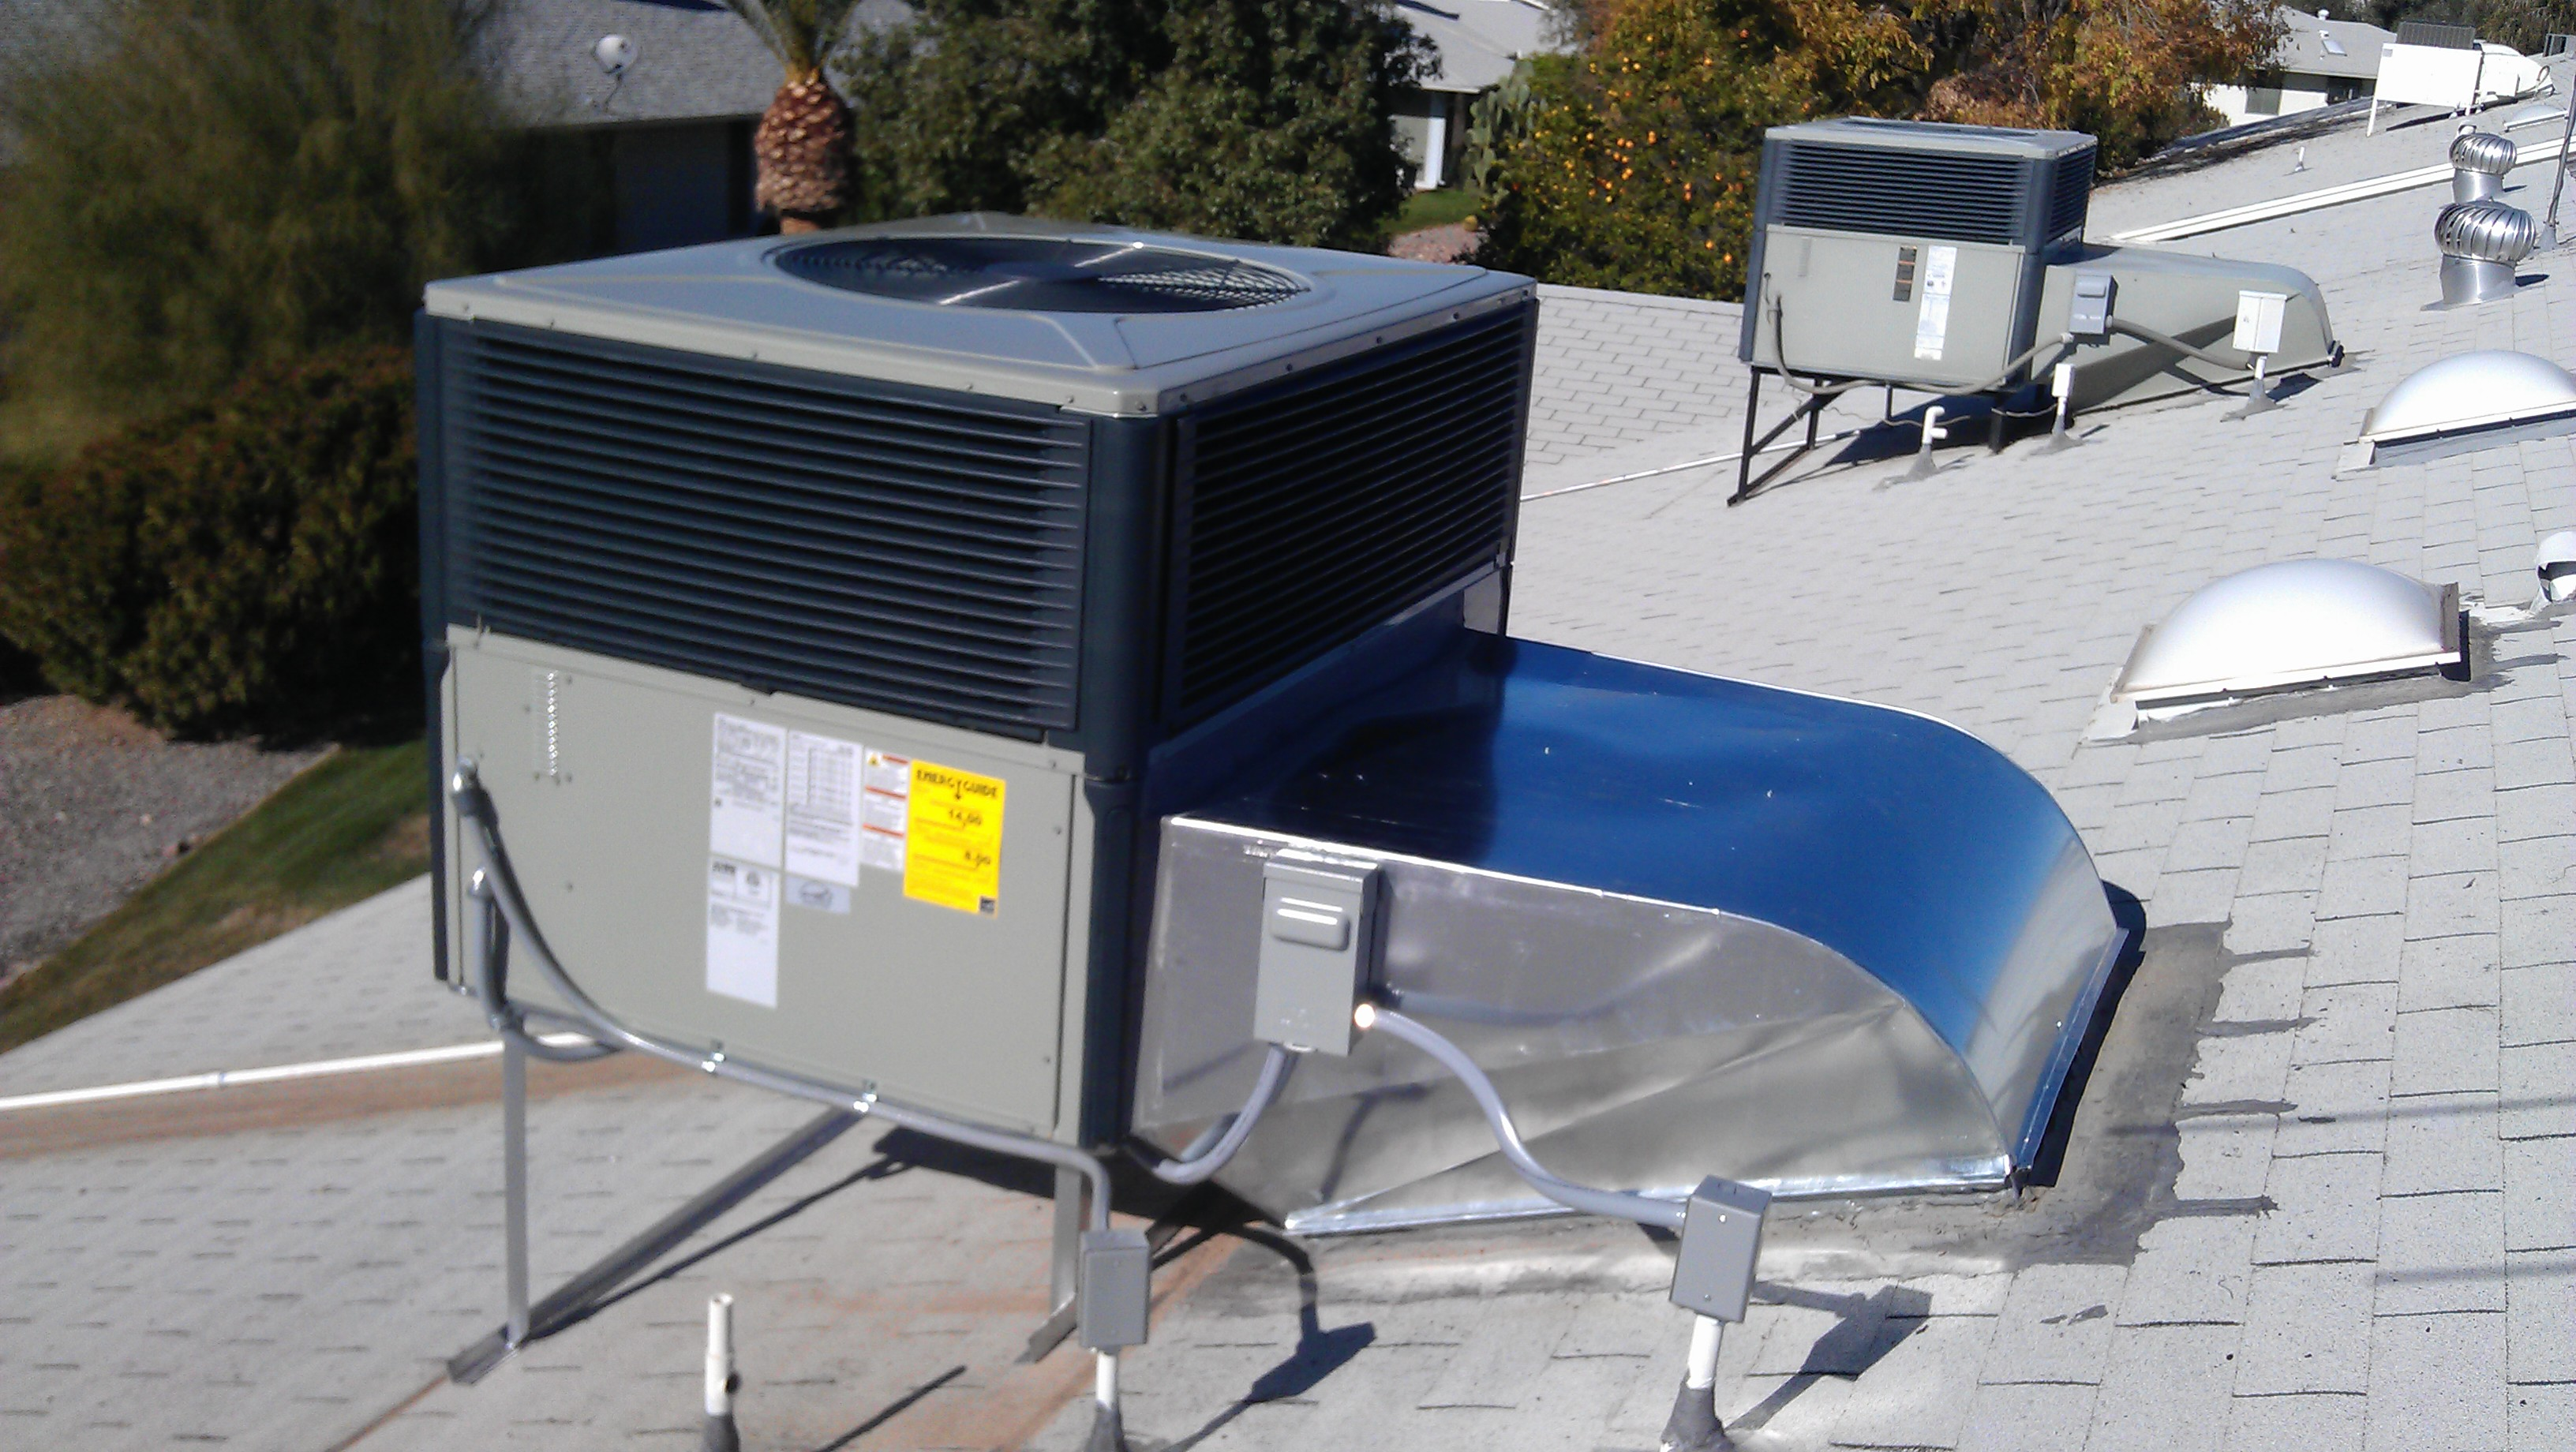 Trustworthy Heat Pump Repair In Davie